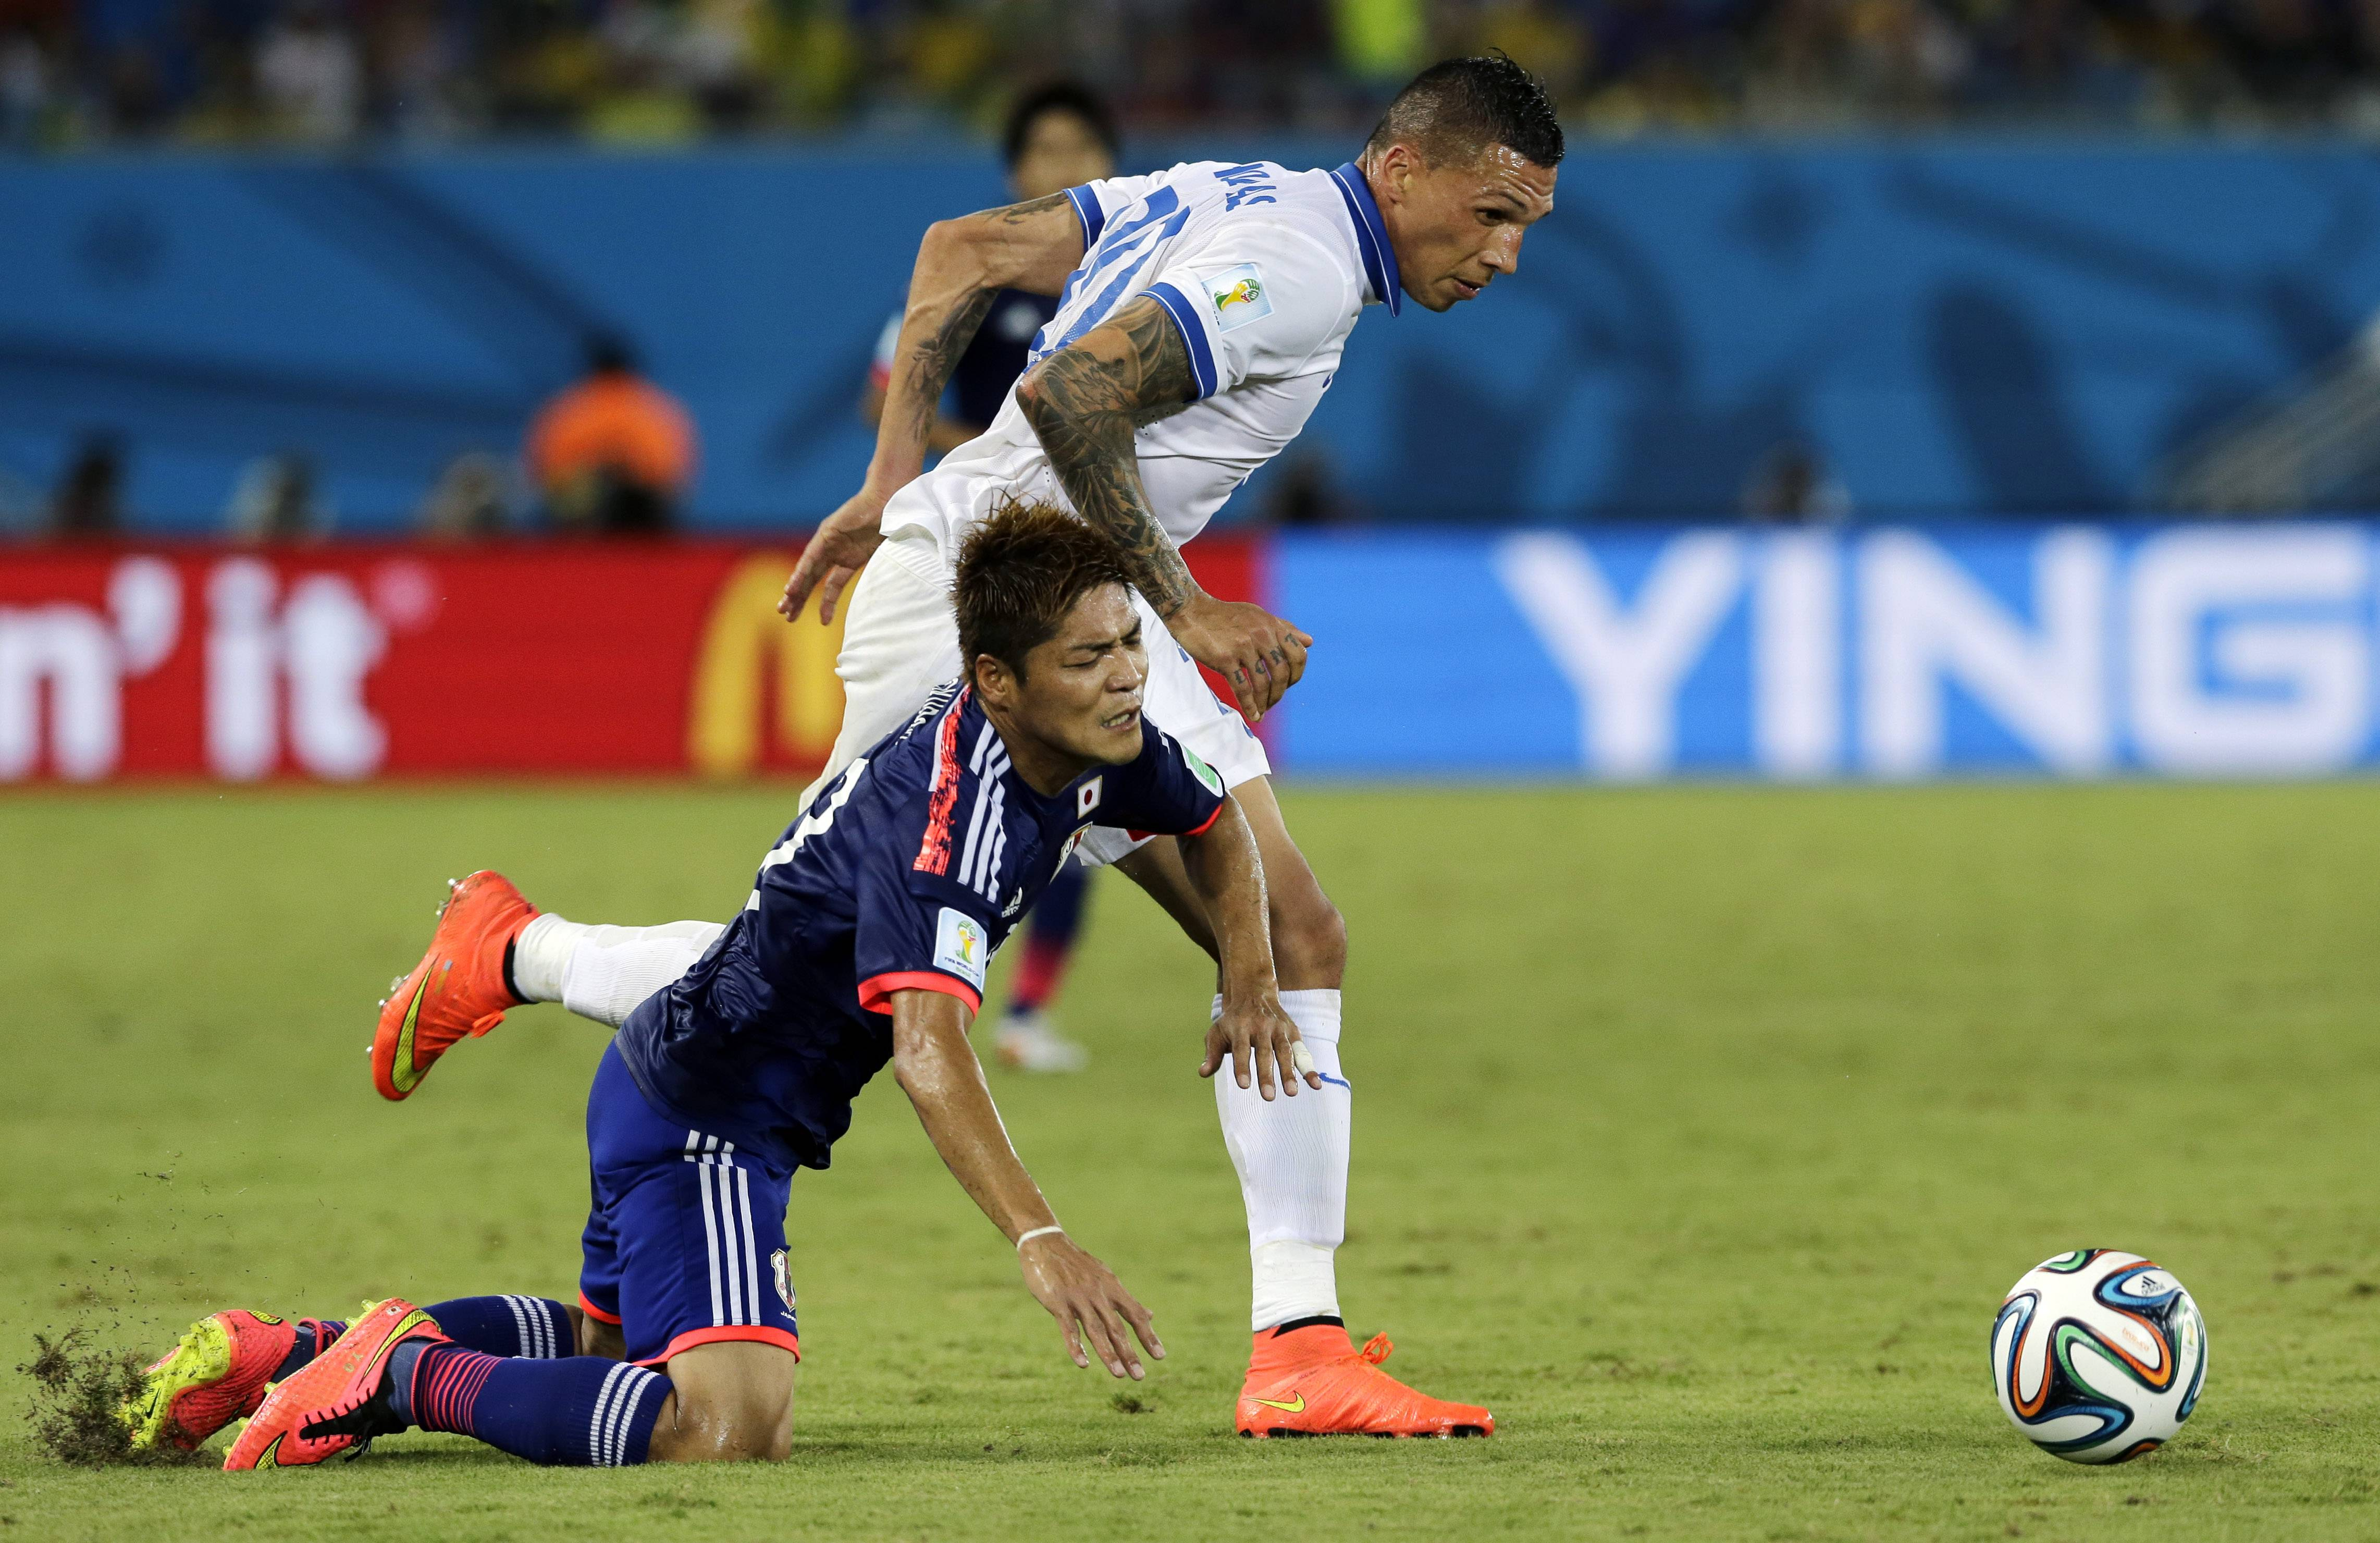 Greece's Jose Holebas, right, pulls down Japan's Yoshito Okubo while chasing the ball during the group C World Cup soccer match between Japan and Greece at the Arena das Dunas in Natal, Brazil, Thursday, June 19, 2014. (AP Photo/Shuji Kajiyama)